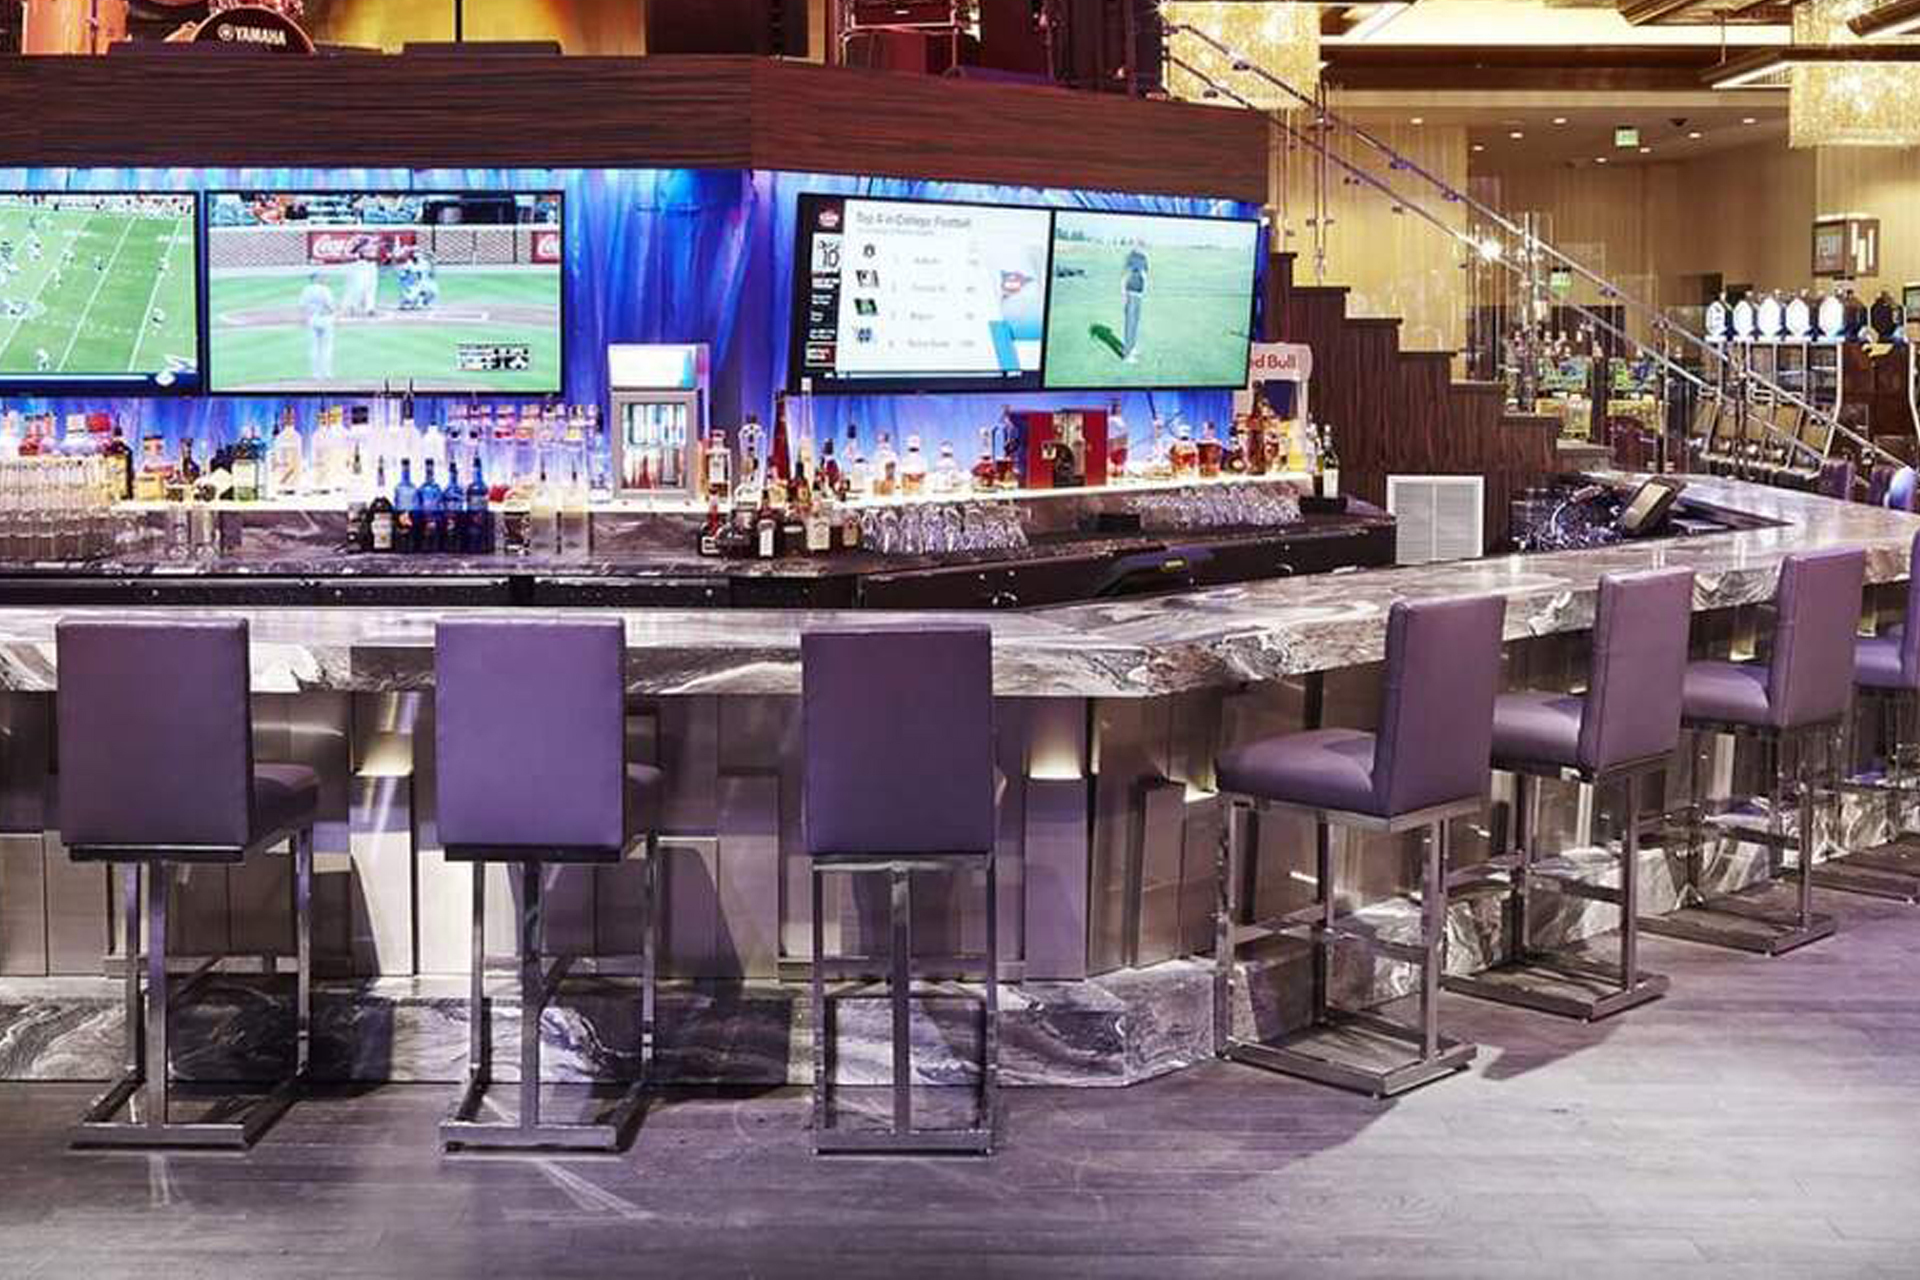 Townsend Leather's Classic Cowhide Royal was used on the Bar Stools at Horseshoe Baltimore Casino.